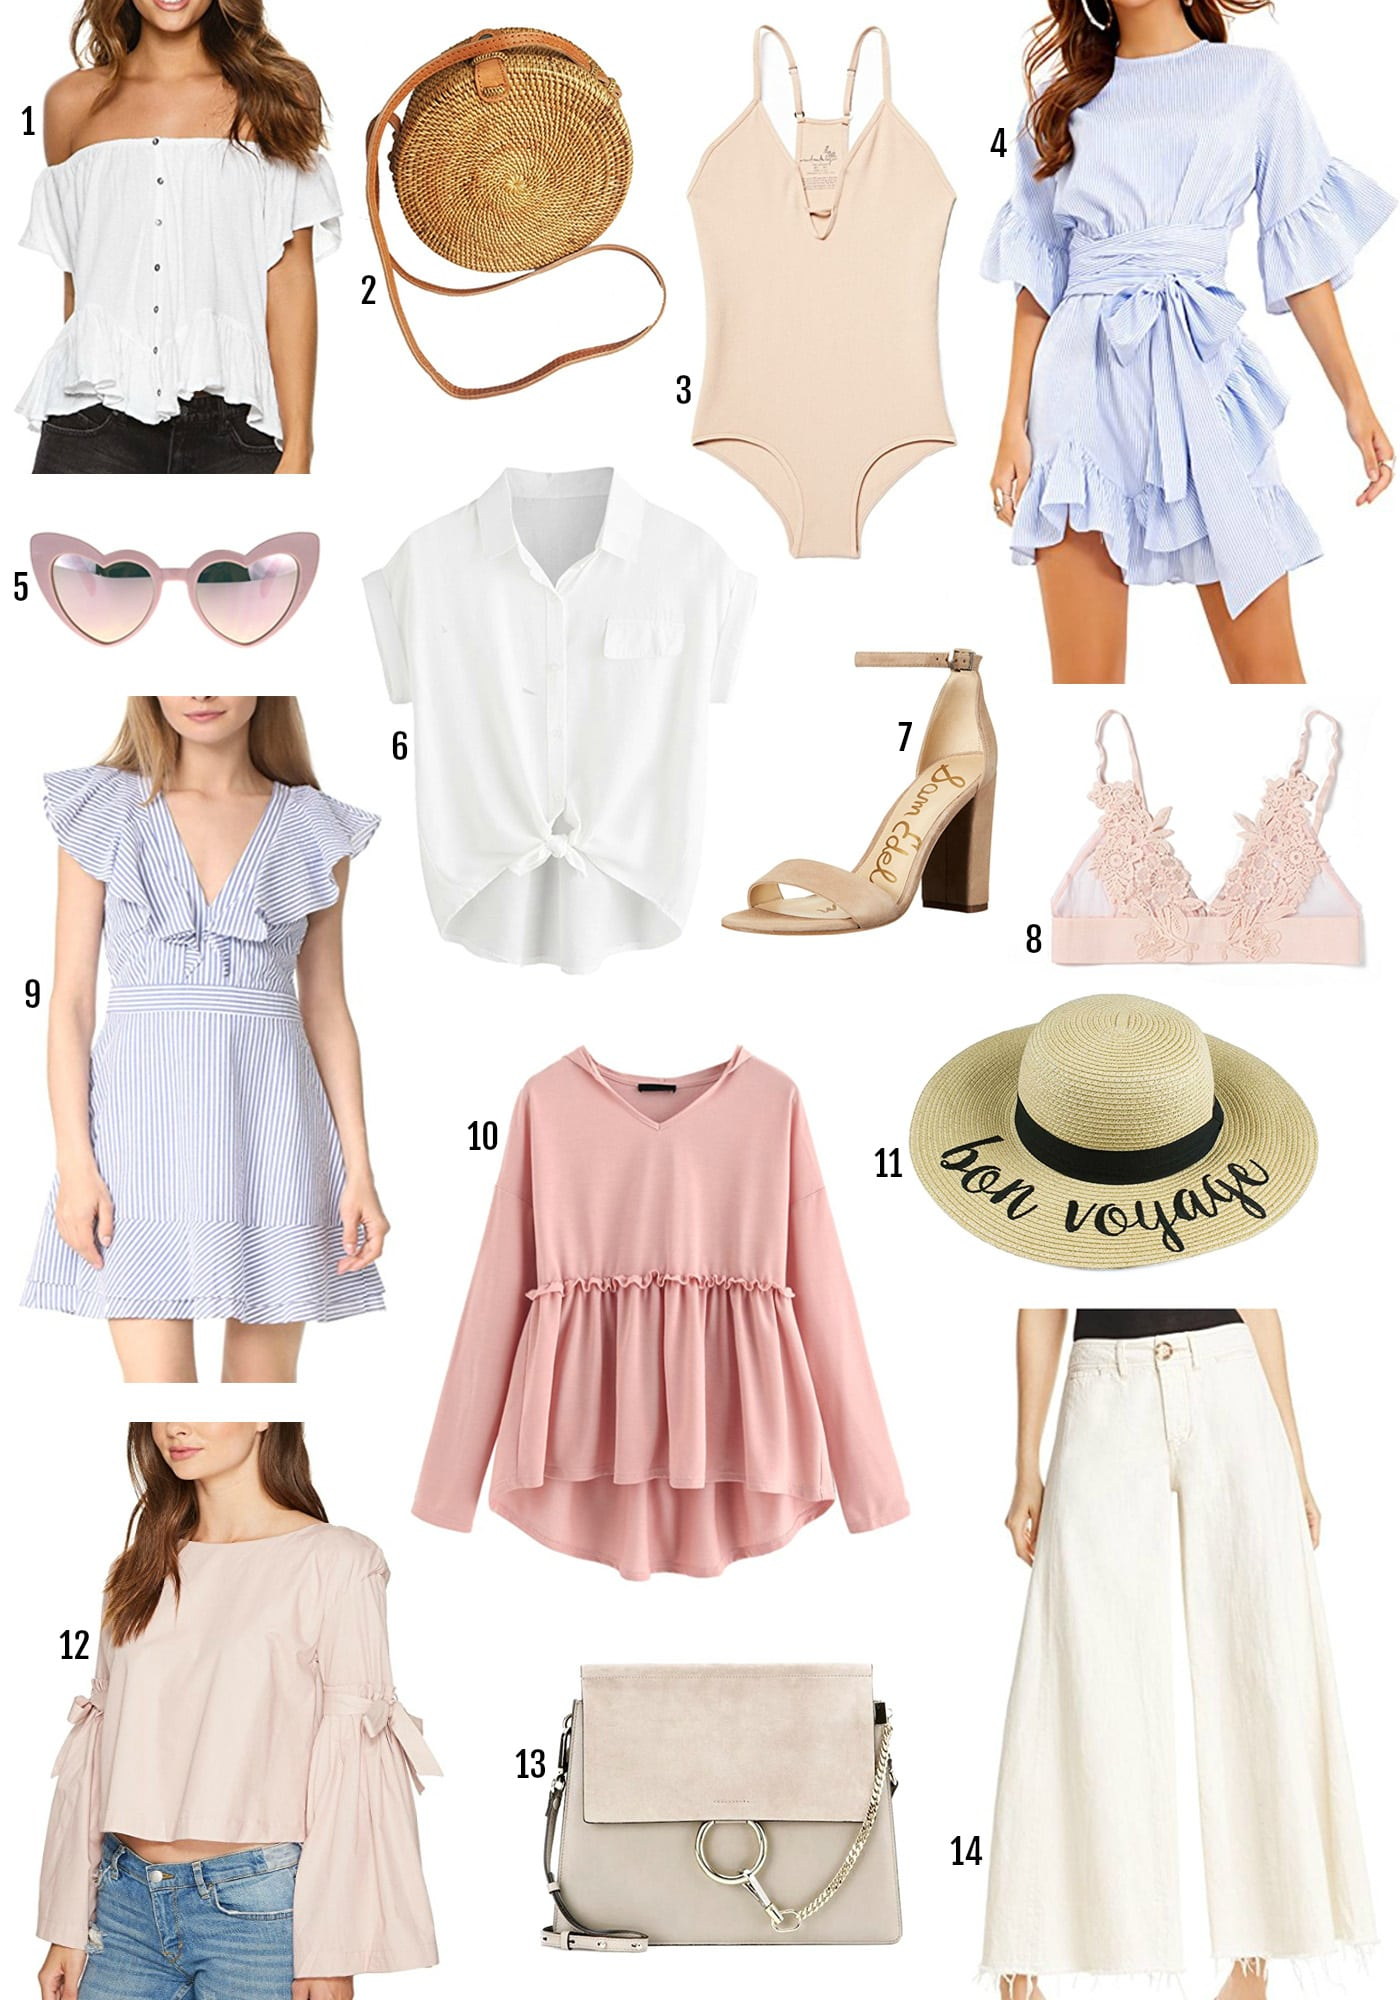 Amazon Spring Fashion Finds | Amazon Fashion | Amazon Sale | Mash Elle style blogger | summer fashion